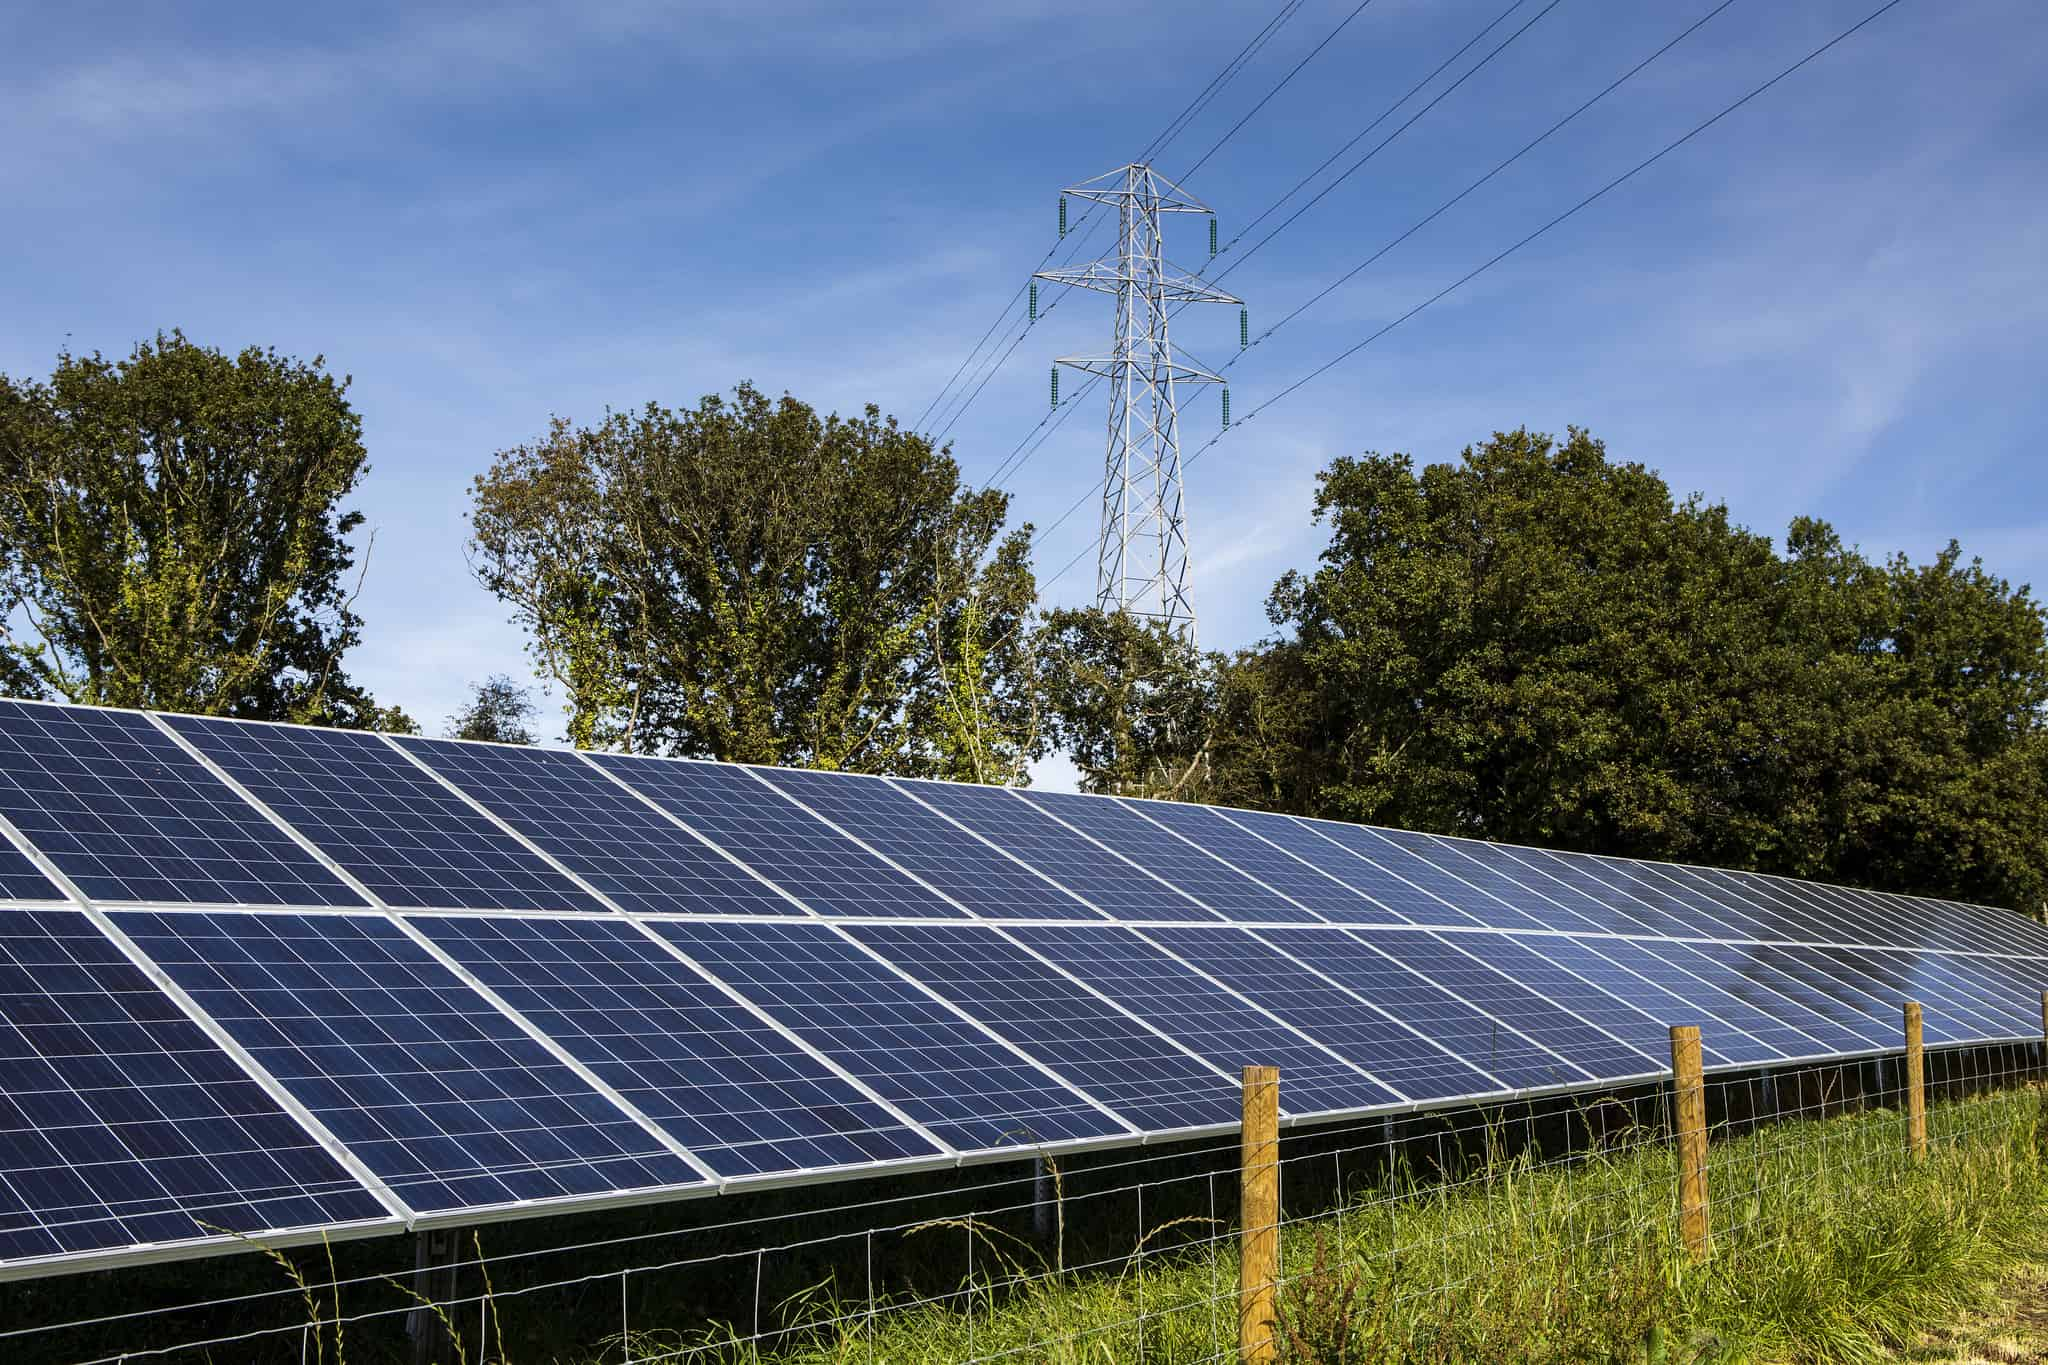 Solar panels and an electricity pylon